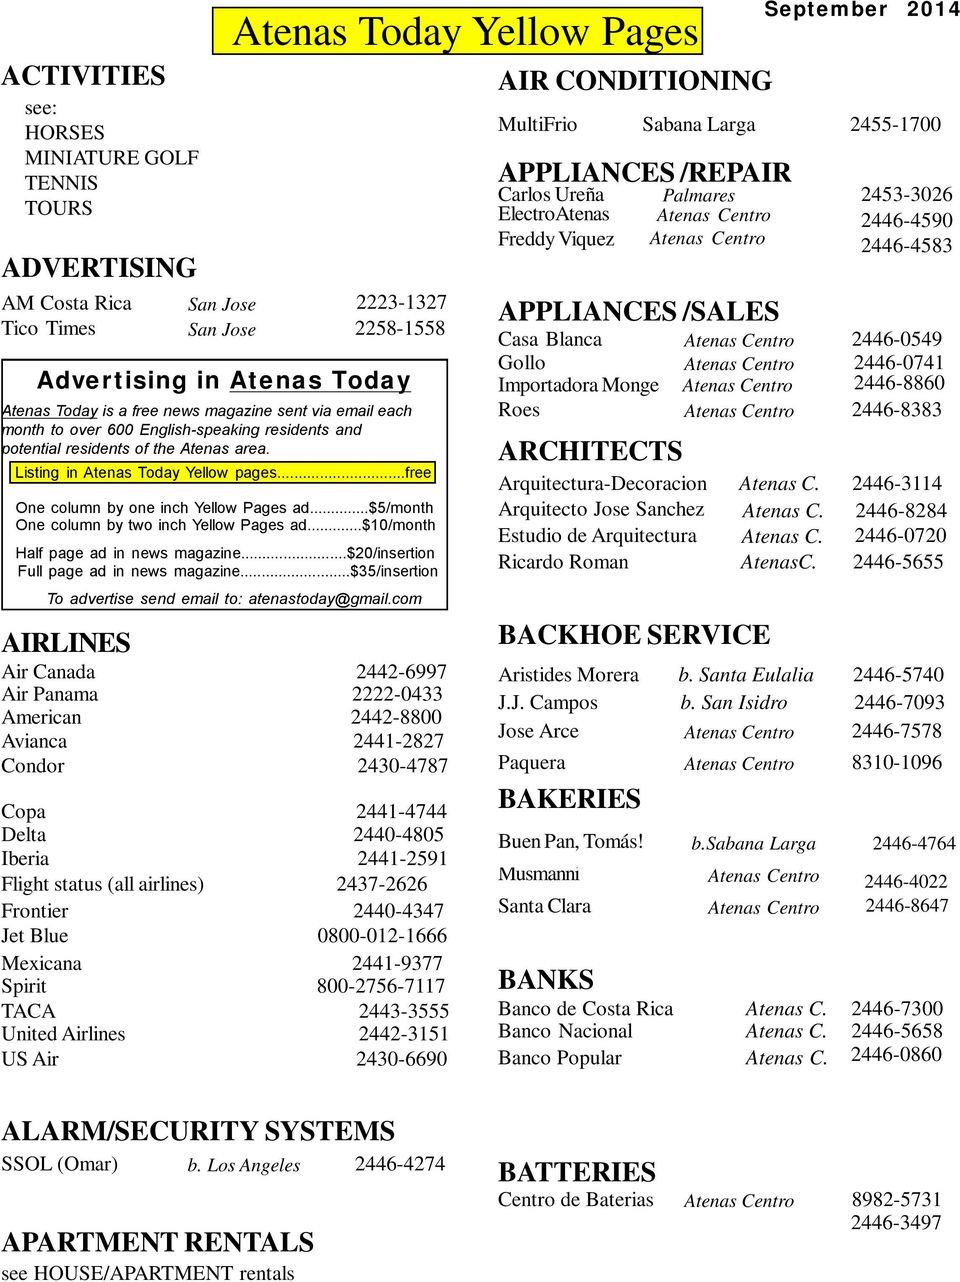 $5/month One column by two inch Yellow Pages ad.